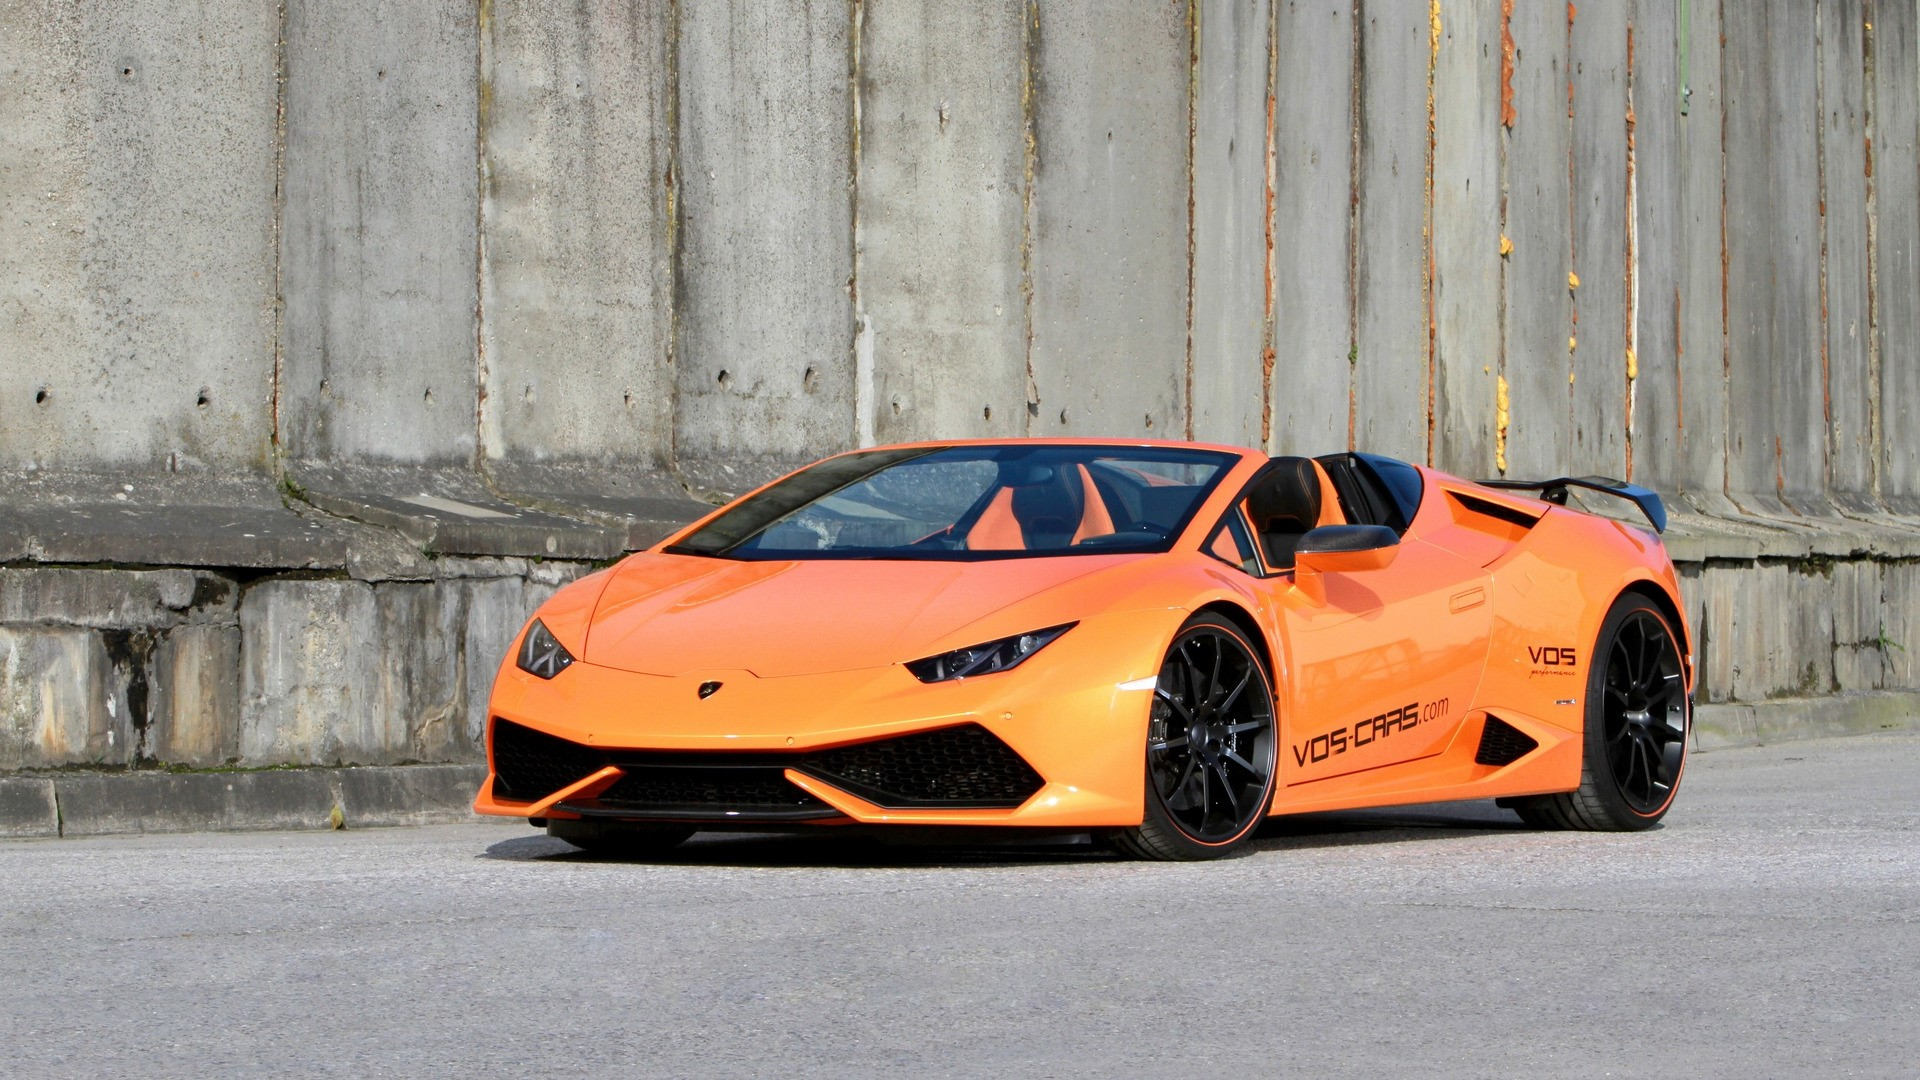 Lamborghini Huracan Spyder by Vision of Speed (3)